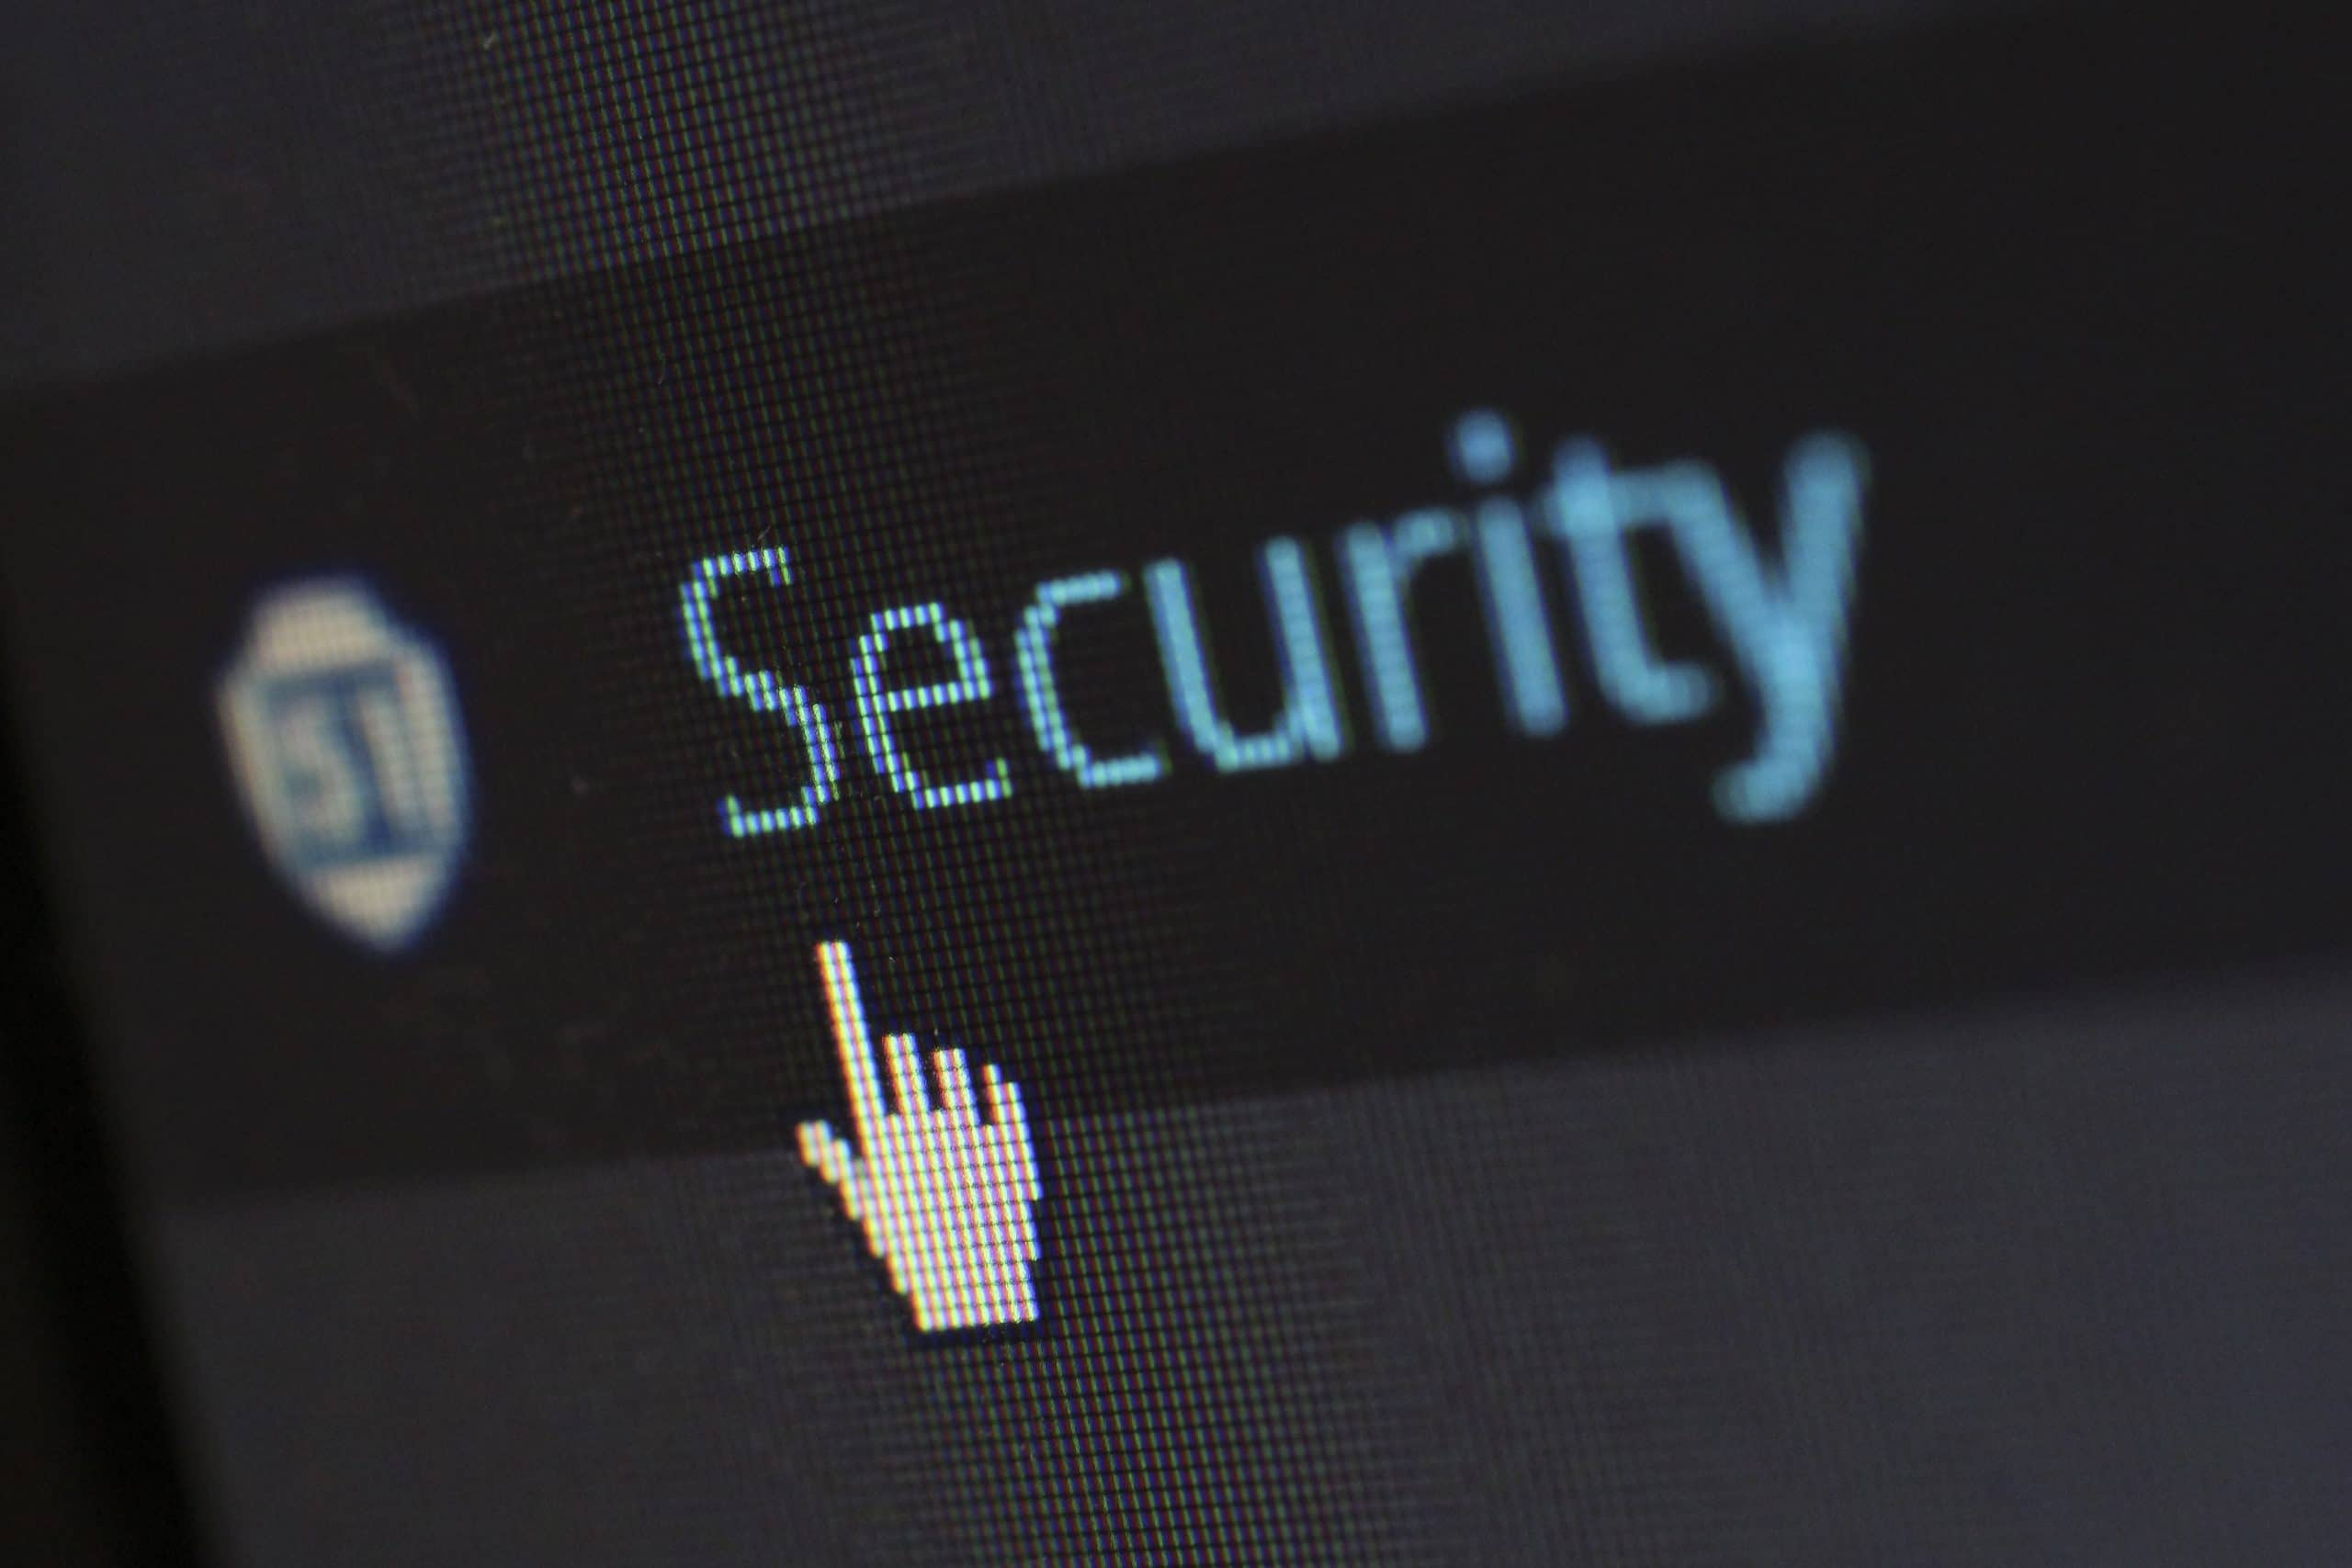 How To Fully Protect Yourself Online